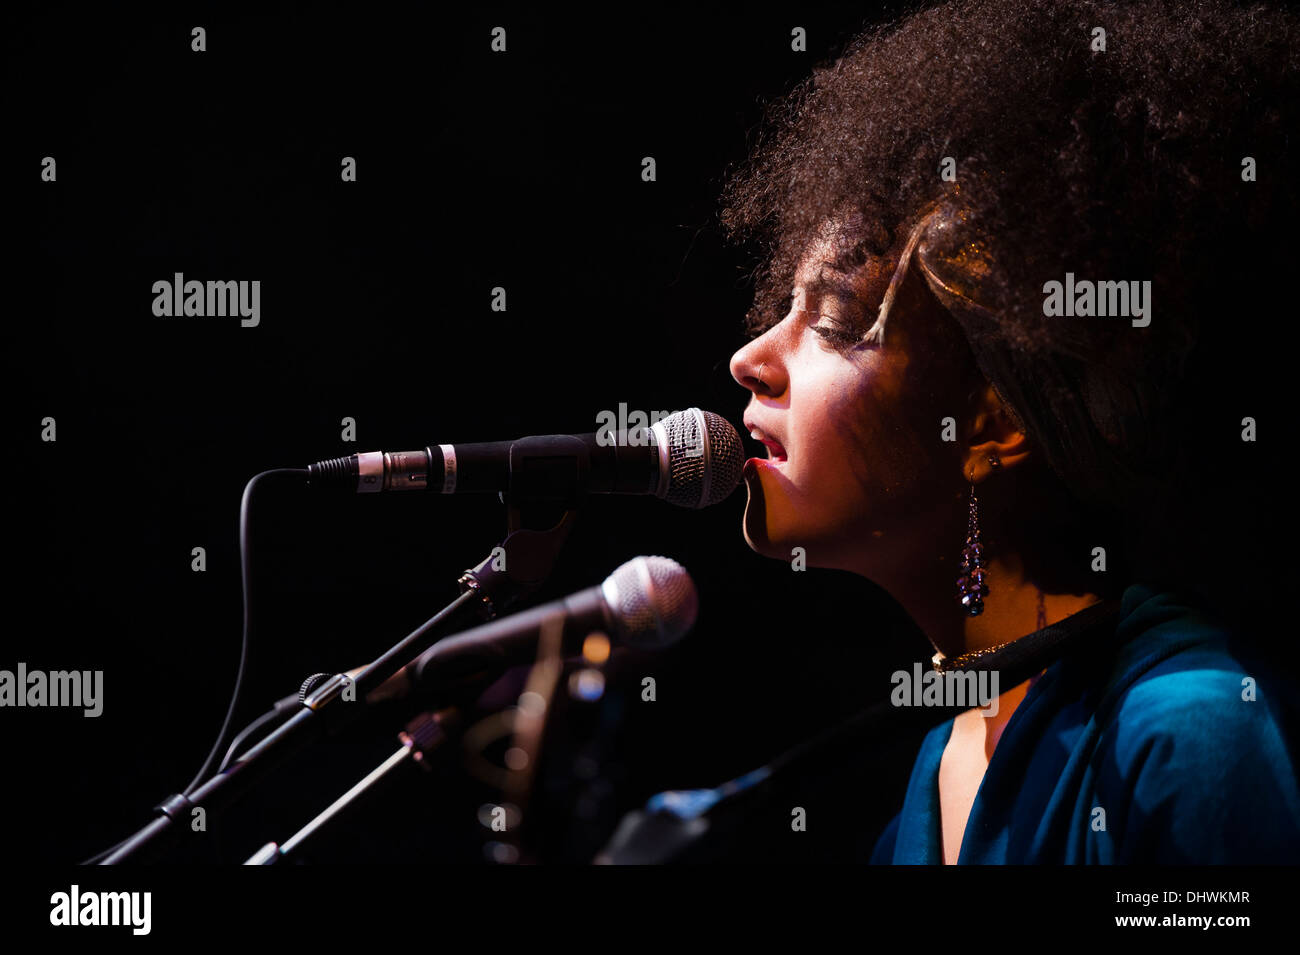 17 year old welsh singer songwriter KIZZY CRAWFORD performing at Aberystwyth Arts Centre 29 October 2013 - Stock Image